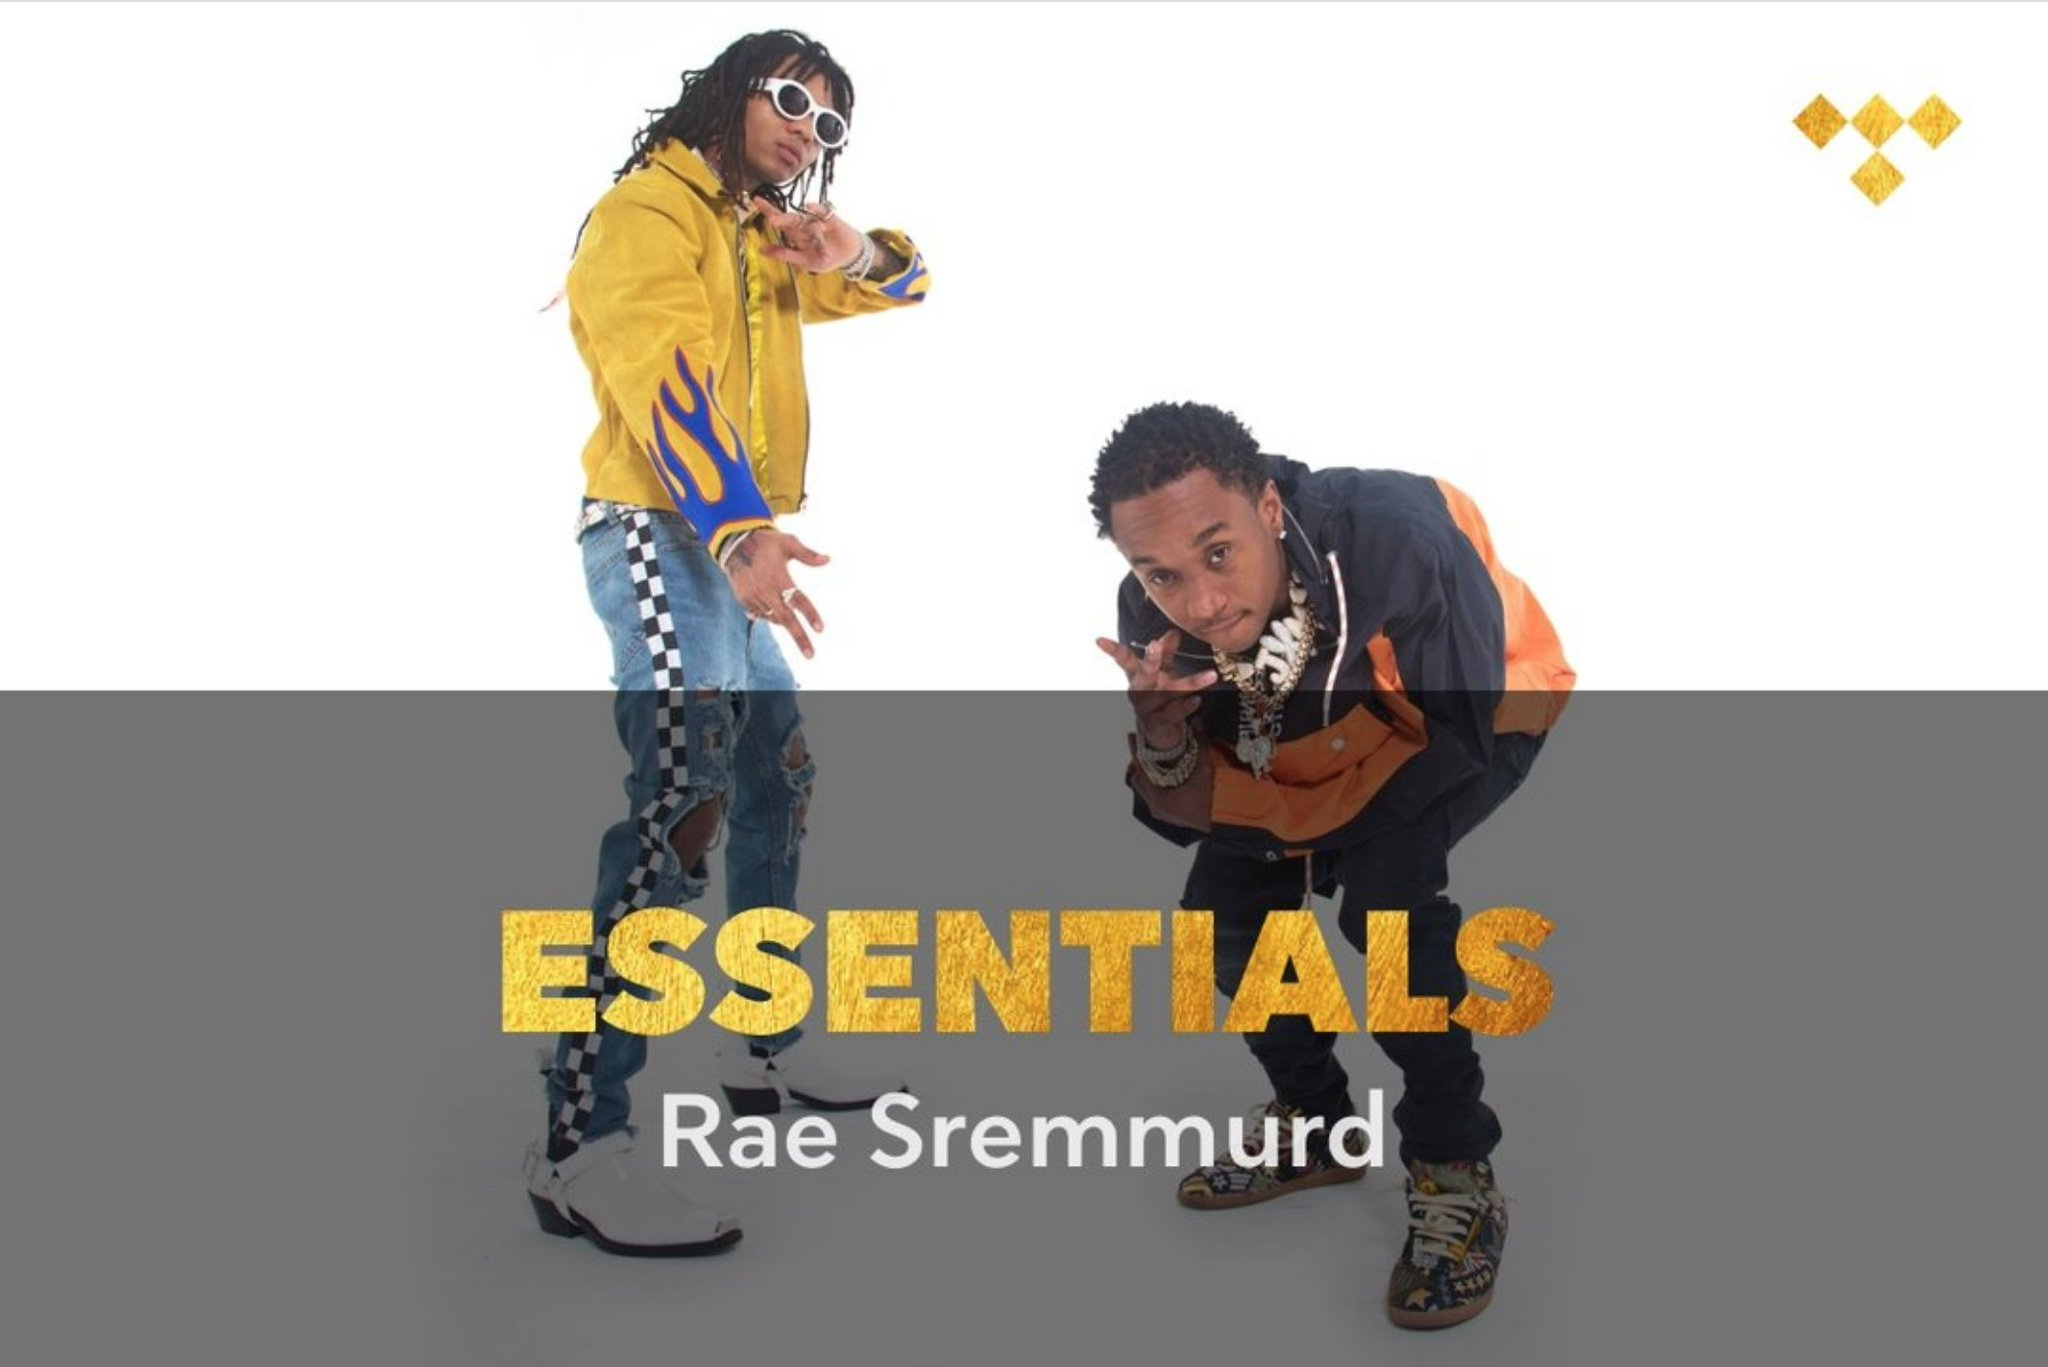 Rae Sremmurd Essentials https://t.co/YlRPHqNwuj #TIDAL https://t.co/5IpfMexxM1